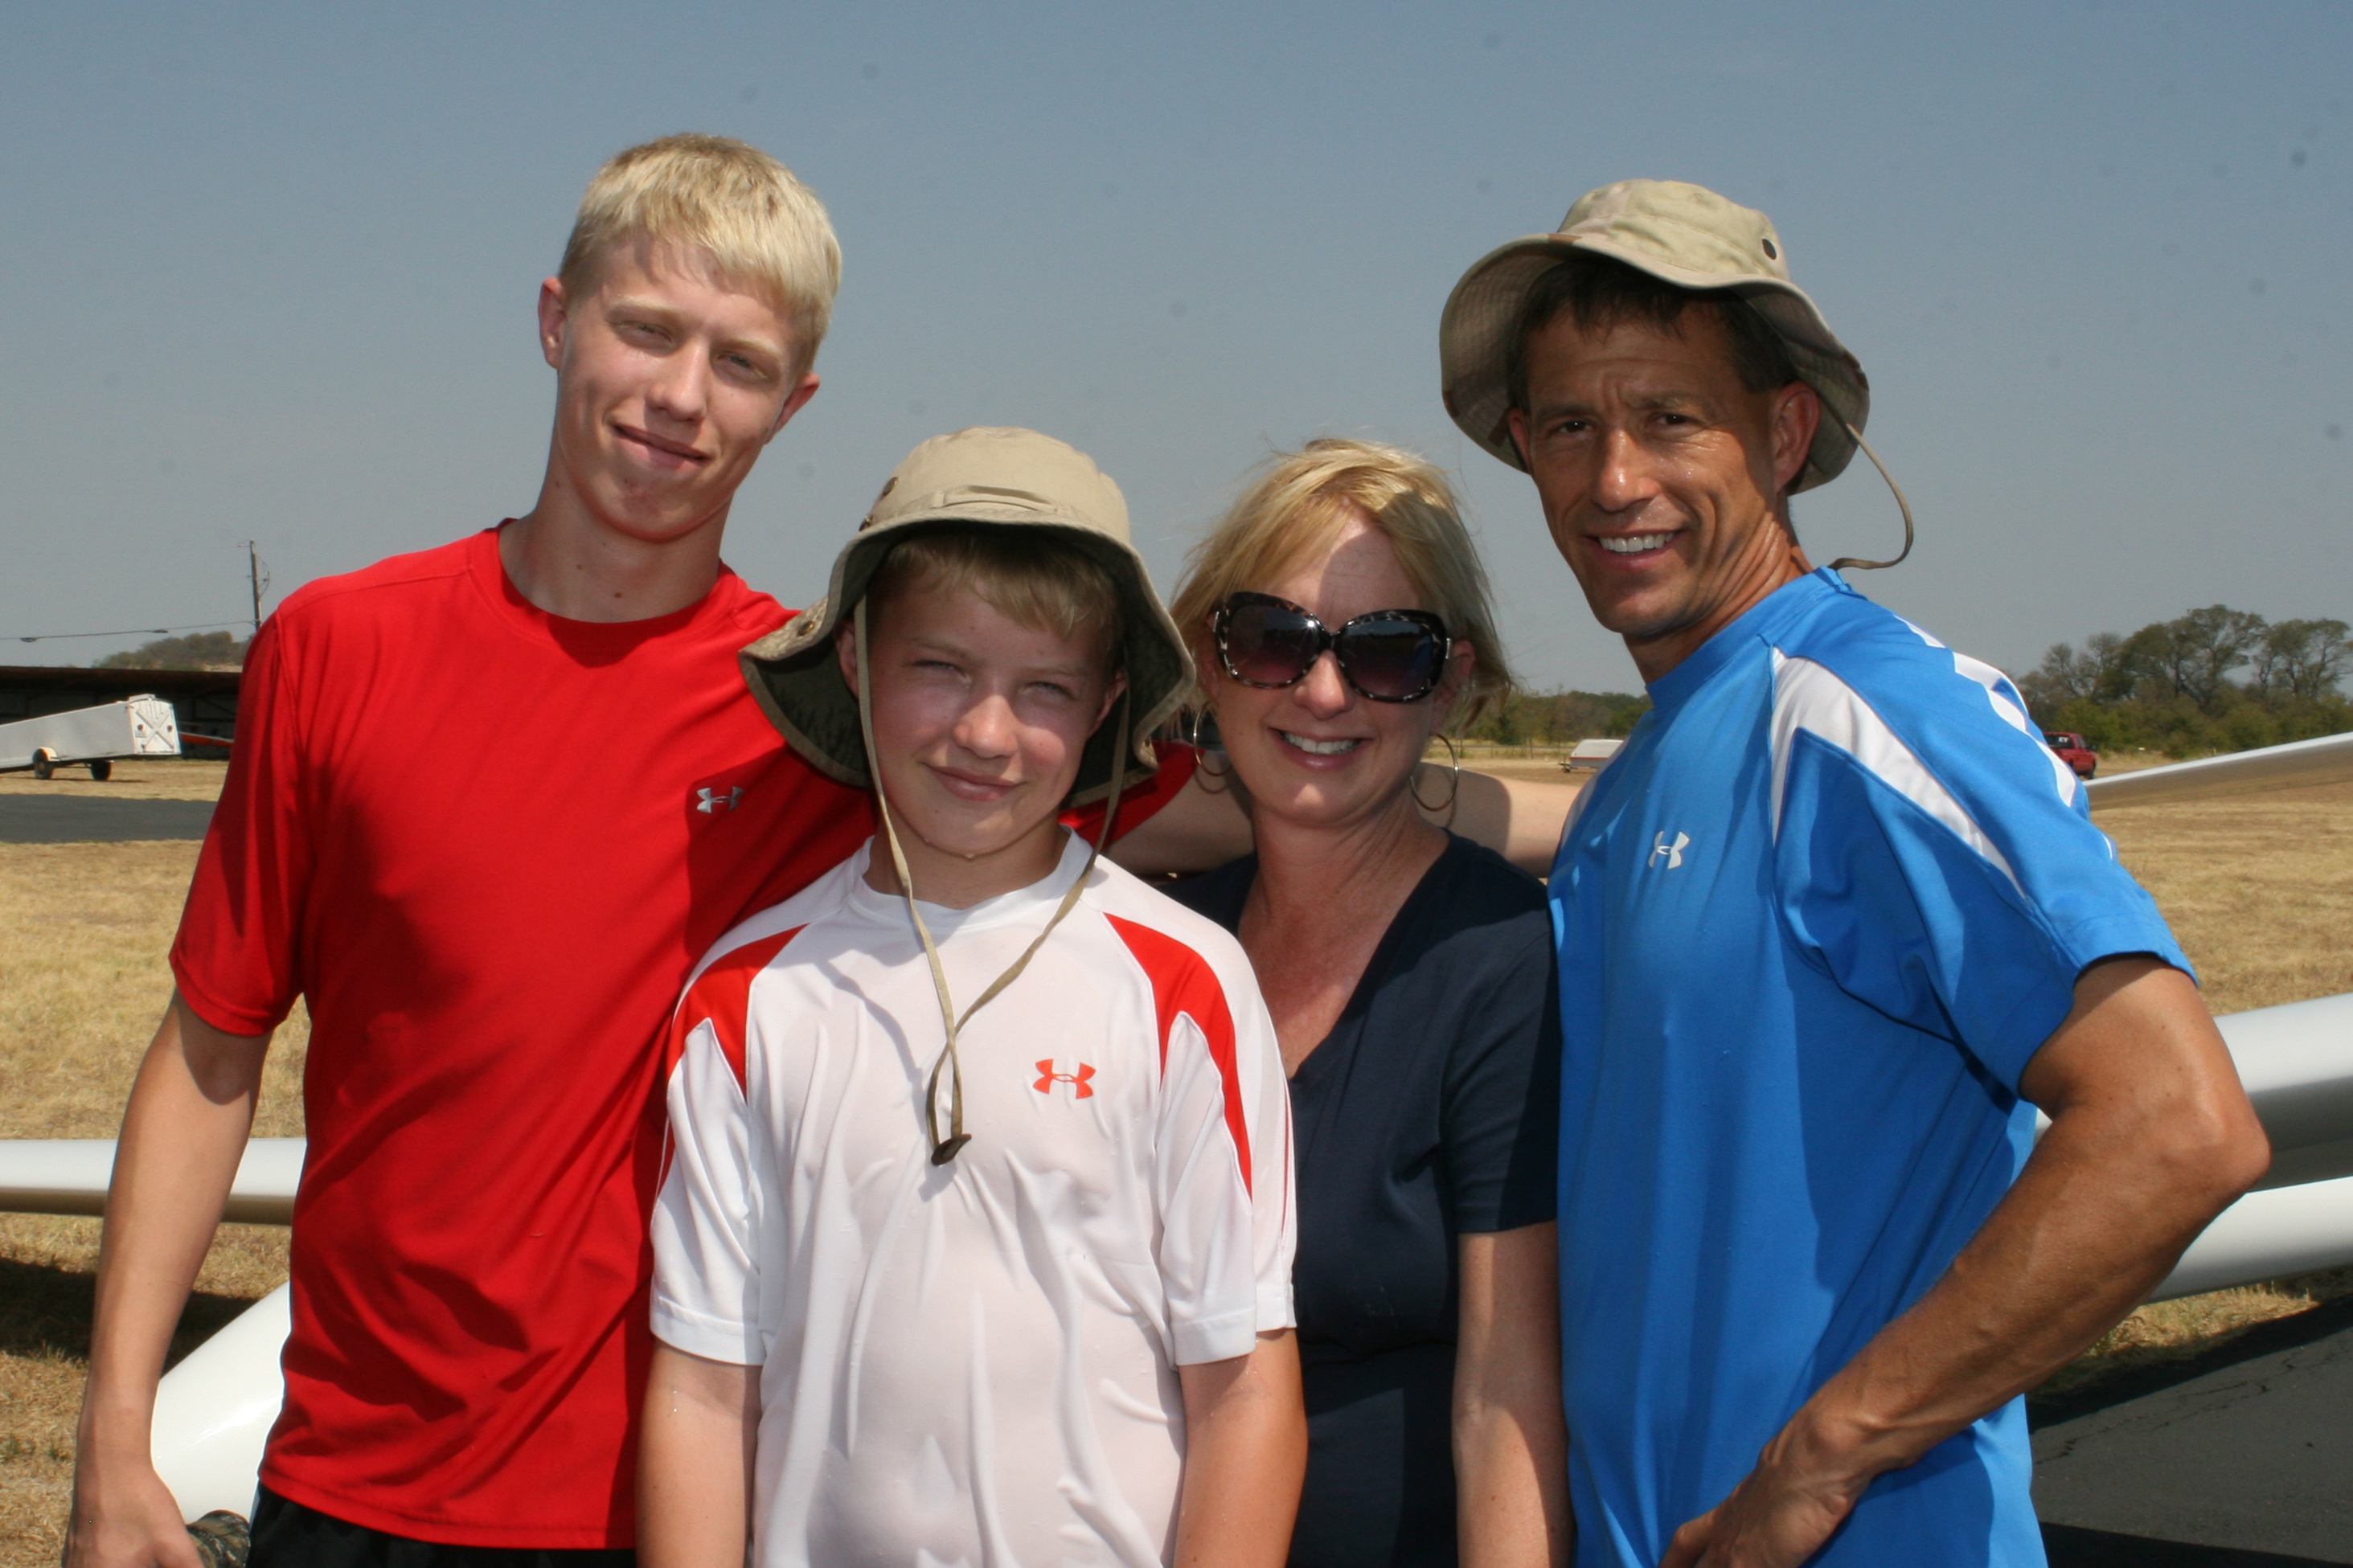 Family at Texas Soaring Association